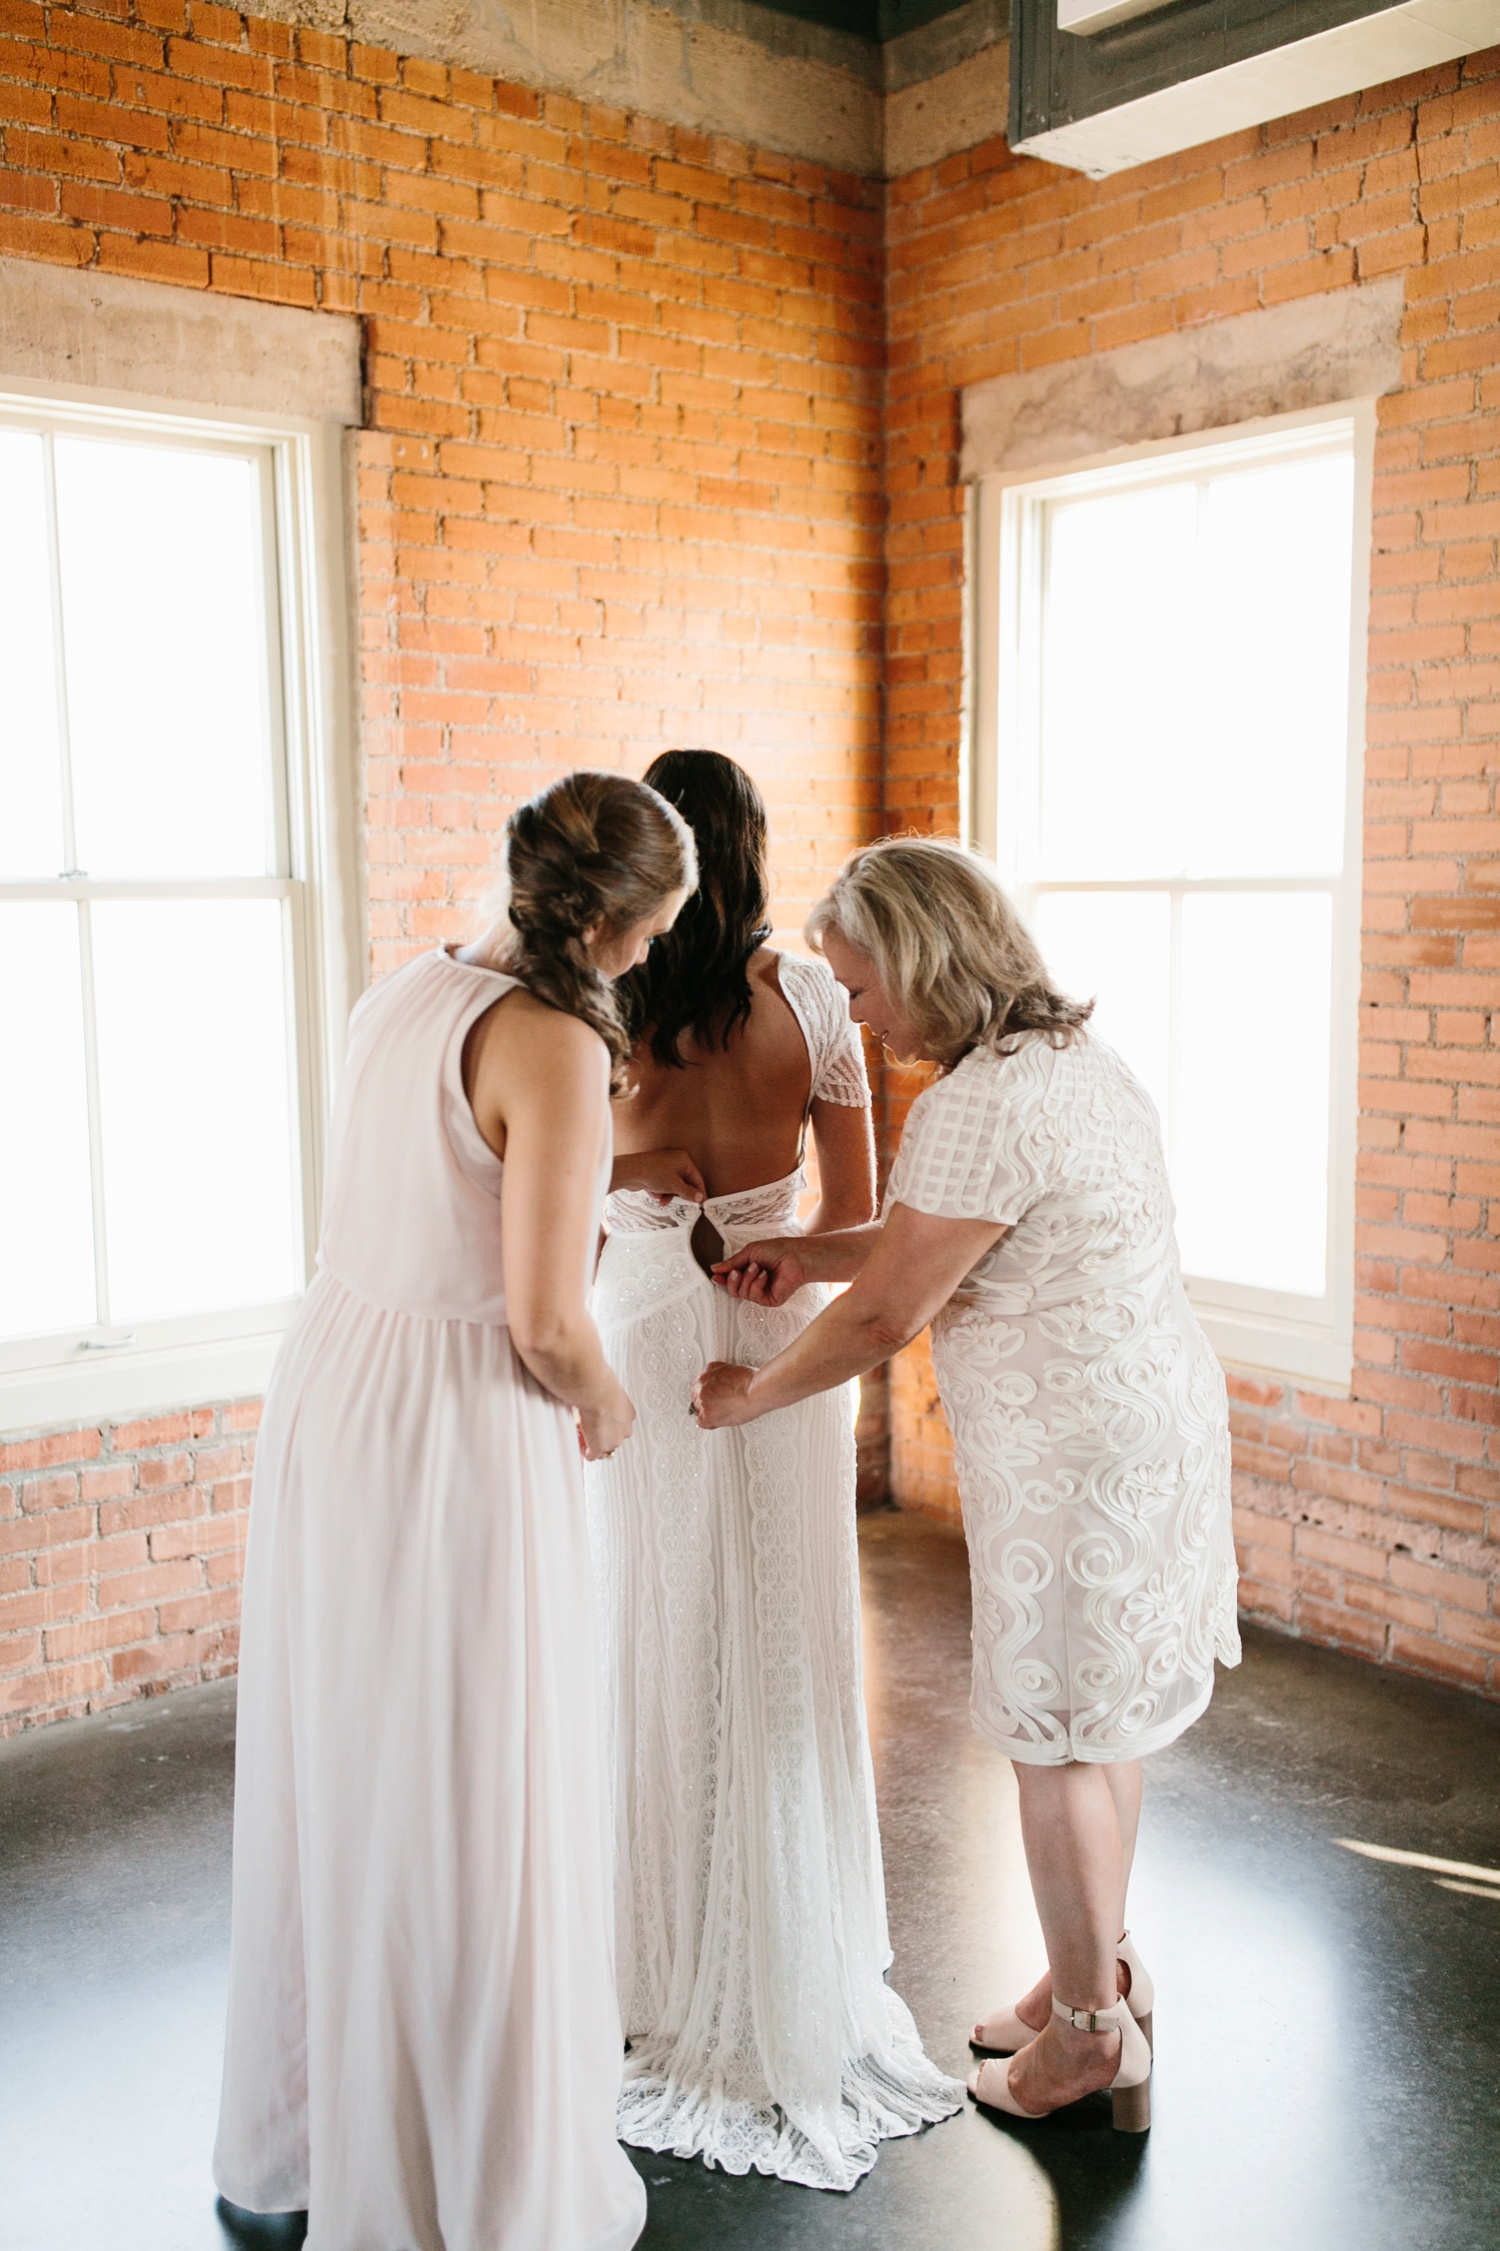 Kadee + Tyler | a raw, emotional wedding at the Filter Building on White Rock Lake in Dallas, TX by North Texas Wedding Photographer, Rachel Meagan Photography 018